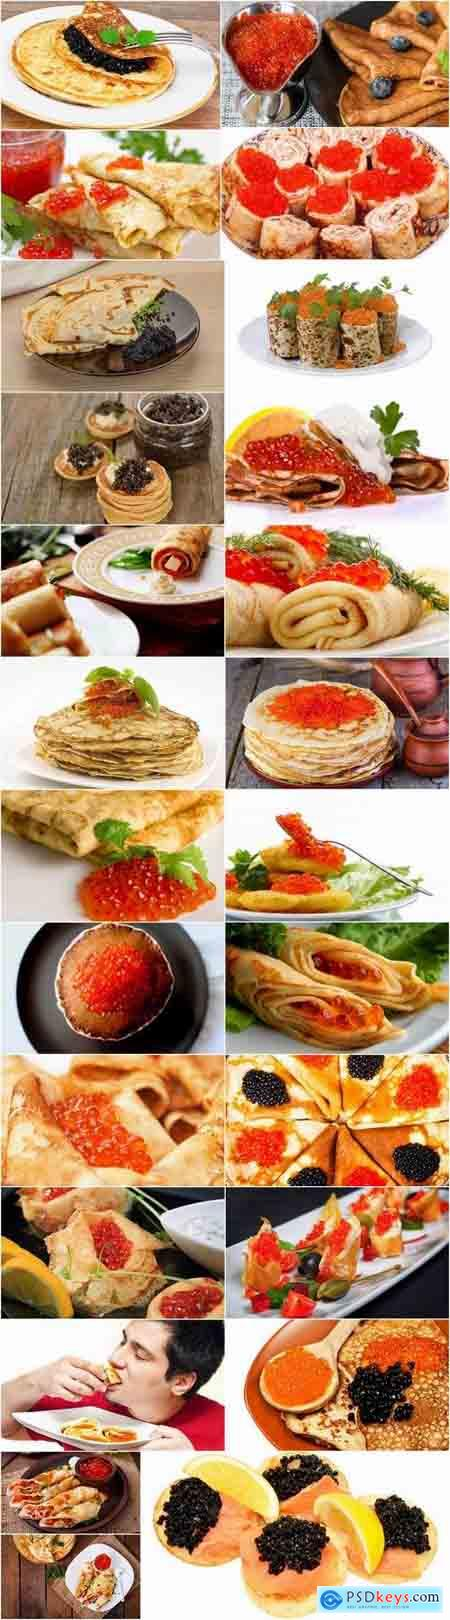 Pancake with red caviar black 25 HQ Jpeg